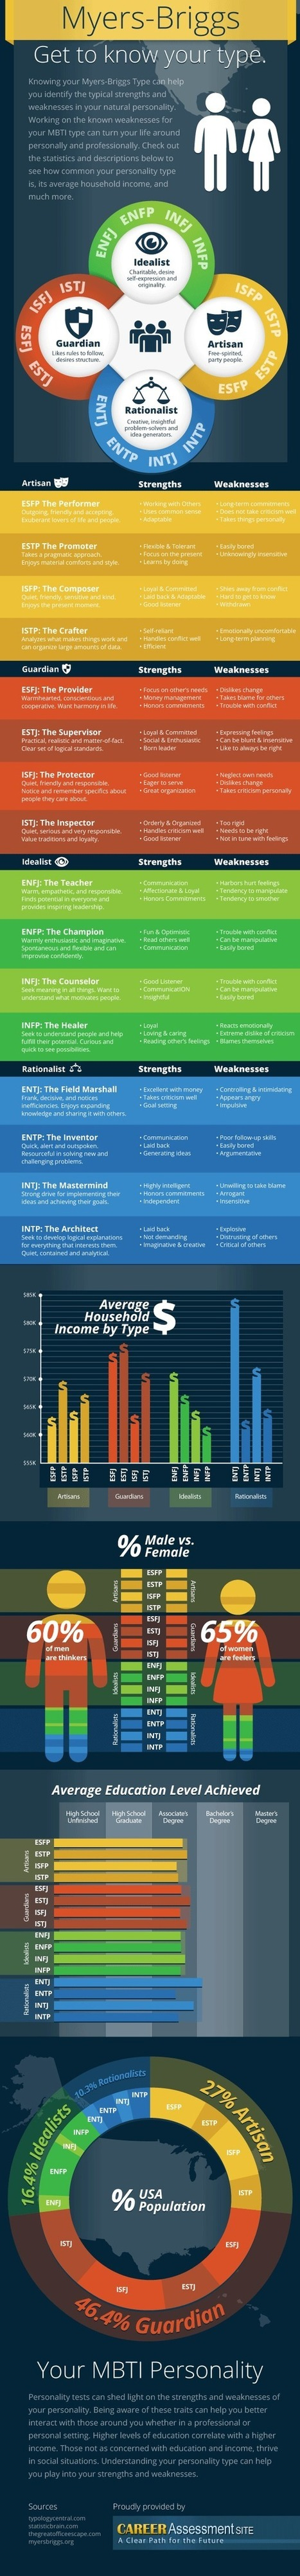 How Myers-Briggs personality profiles relate to socio-economic status [infographic] | Self help | Scoop.it